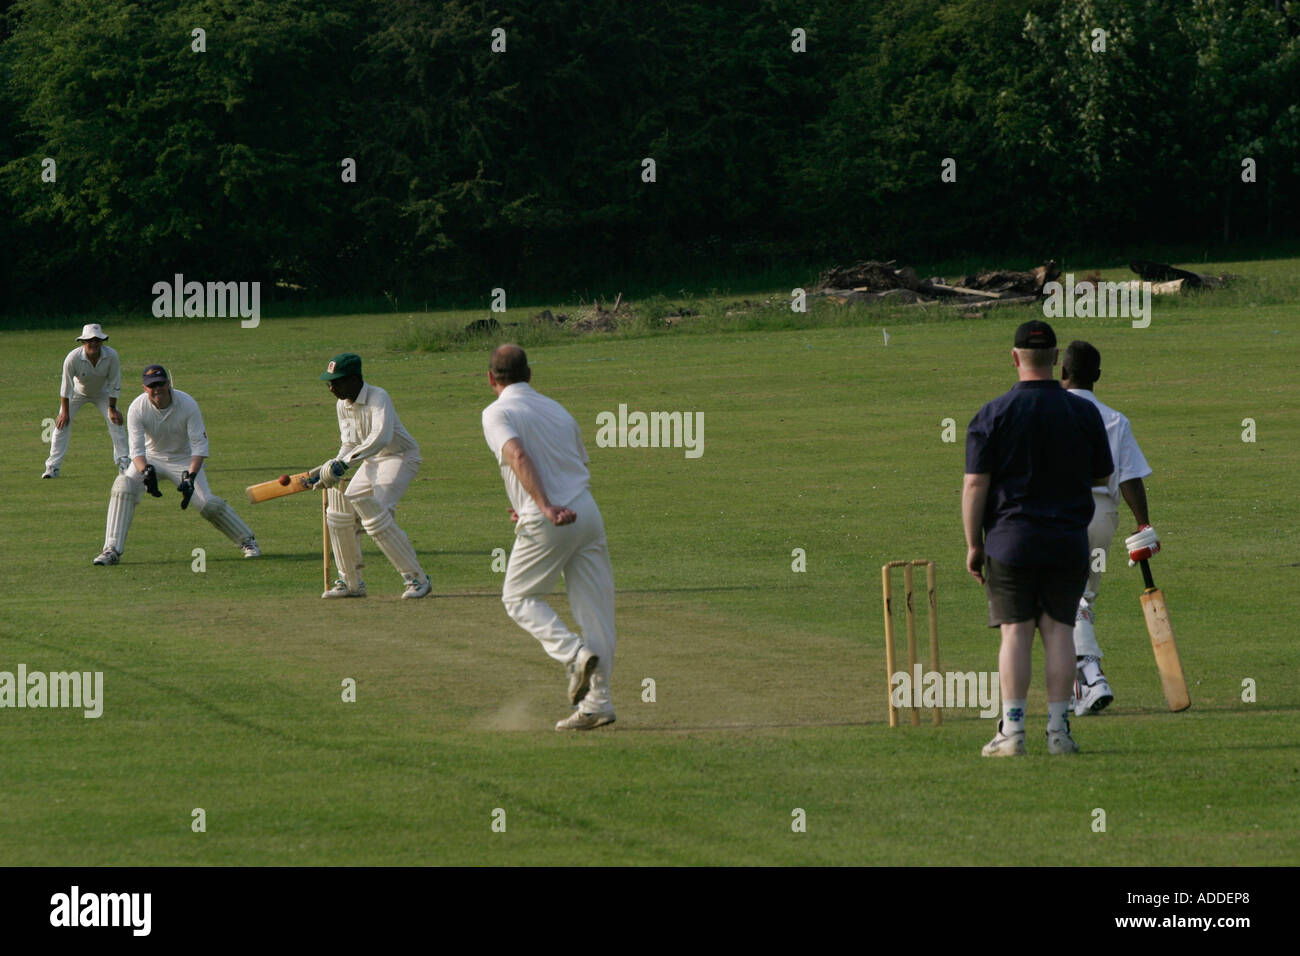 Playing cricket on the Hambleden village green - Stock Image